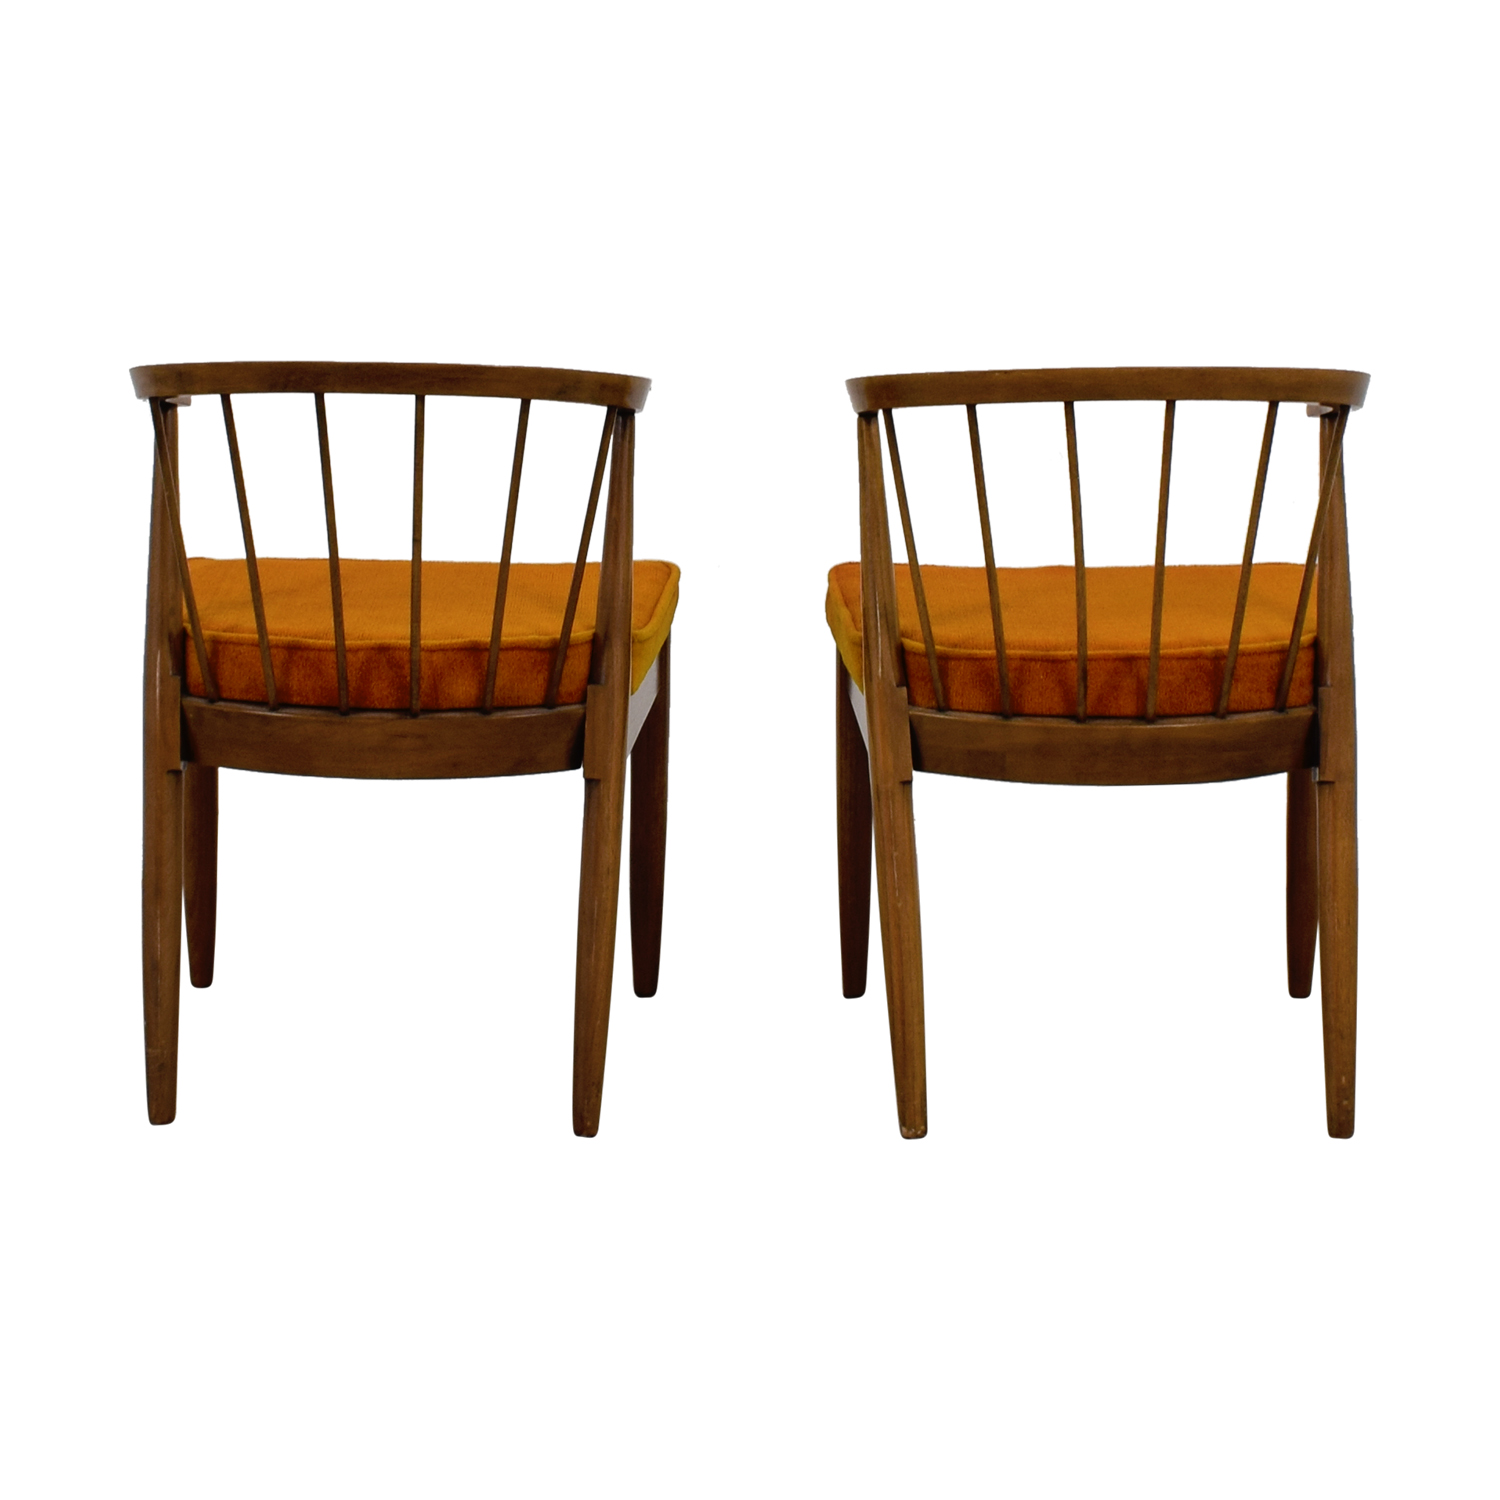 buy Vintage Wood and Orange Cushion Chairs